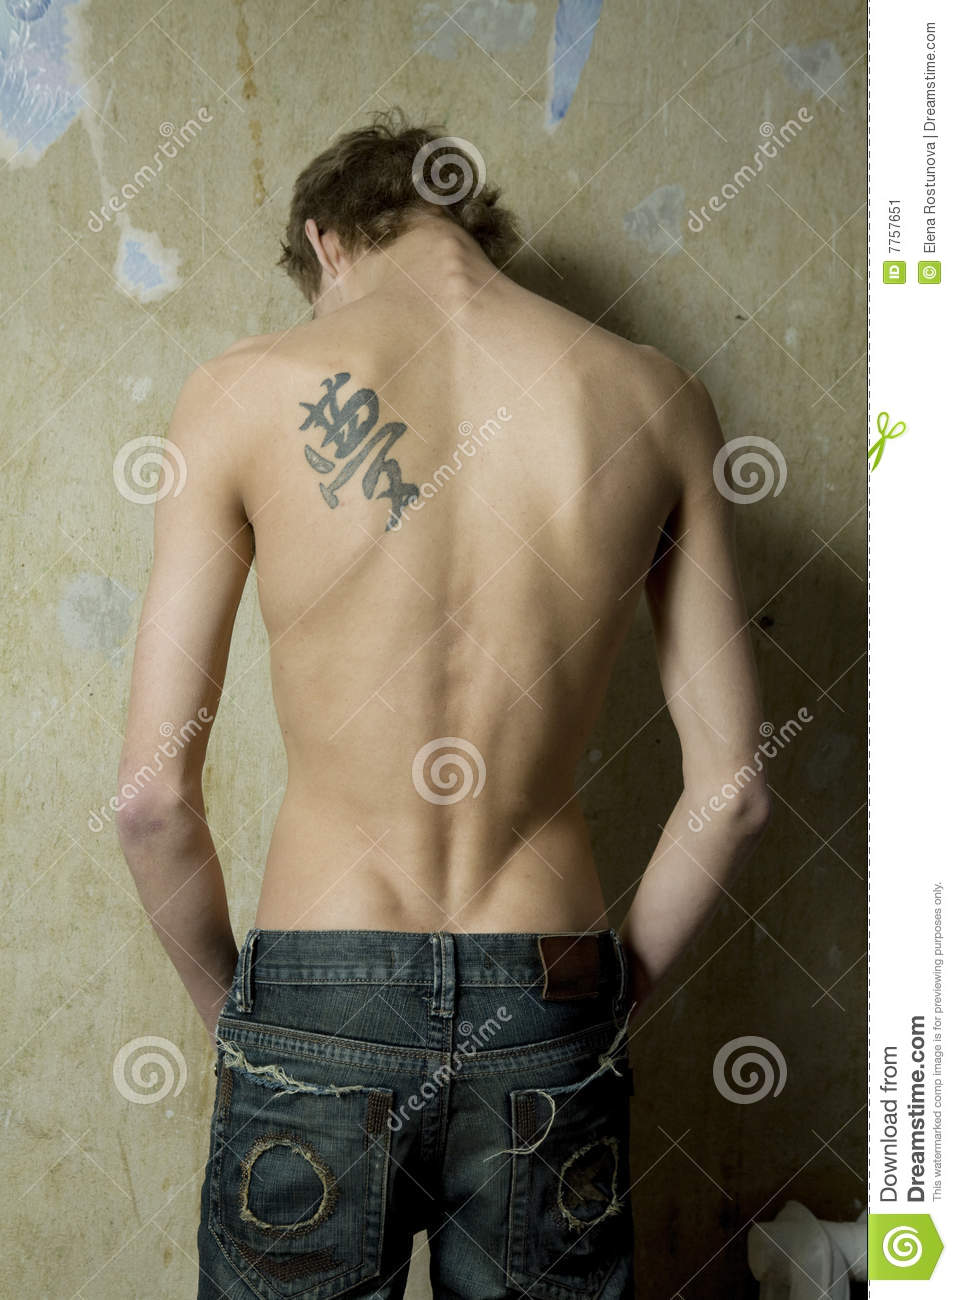 homme avec le tatouage sur le dos image stock image du. Black Bedroom Furniture Sets. Home Design Ideas